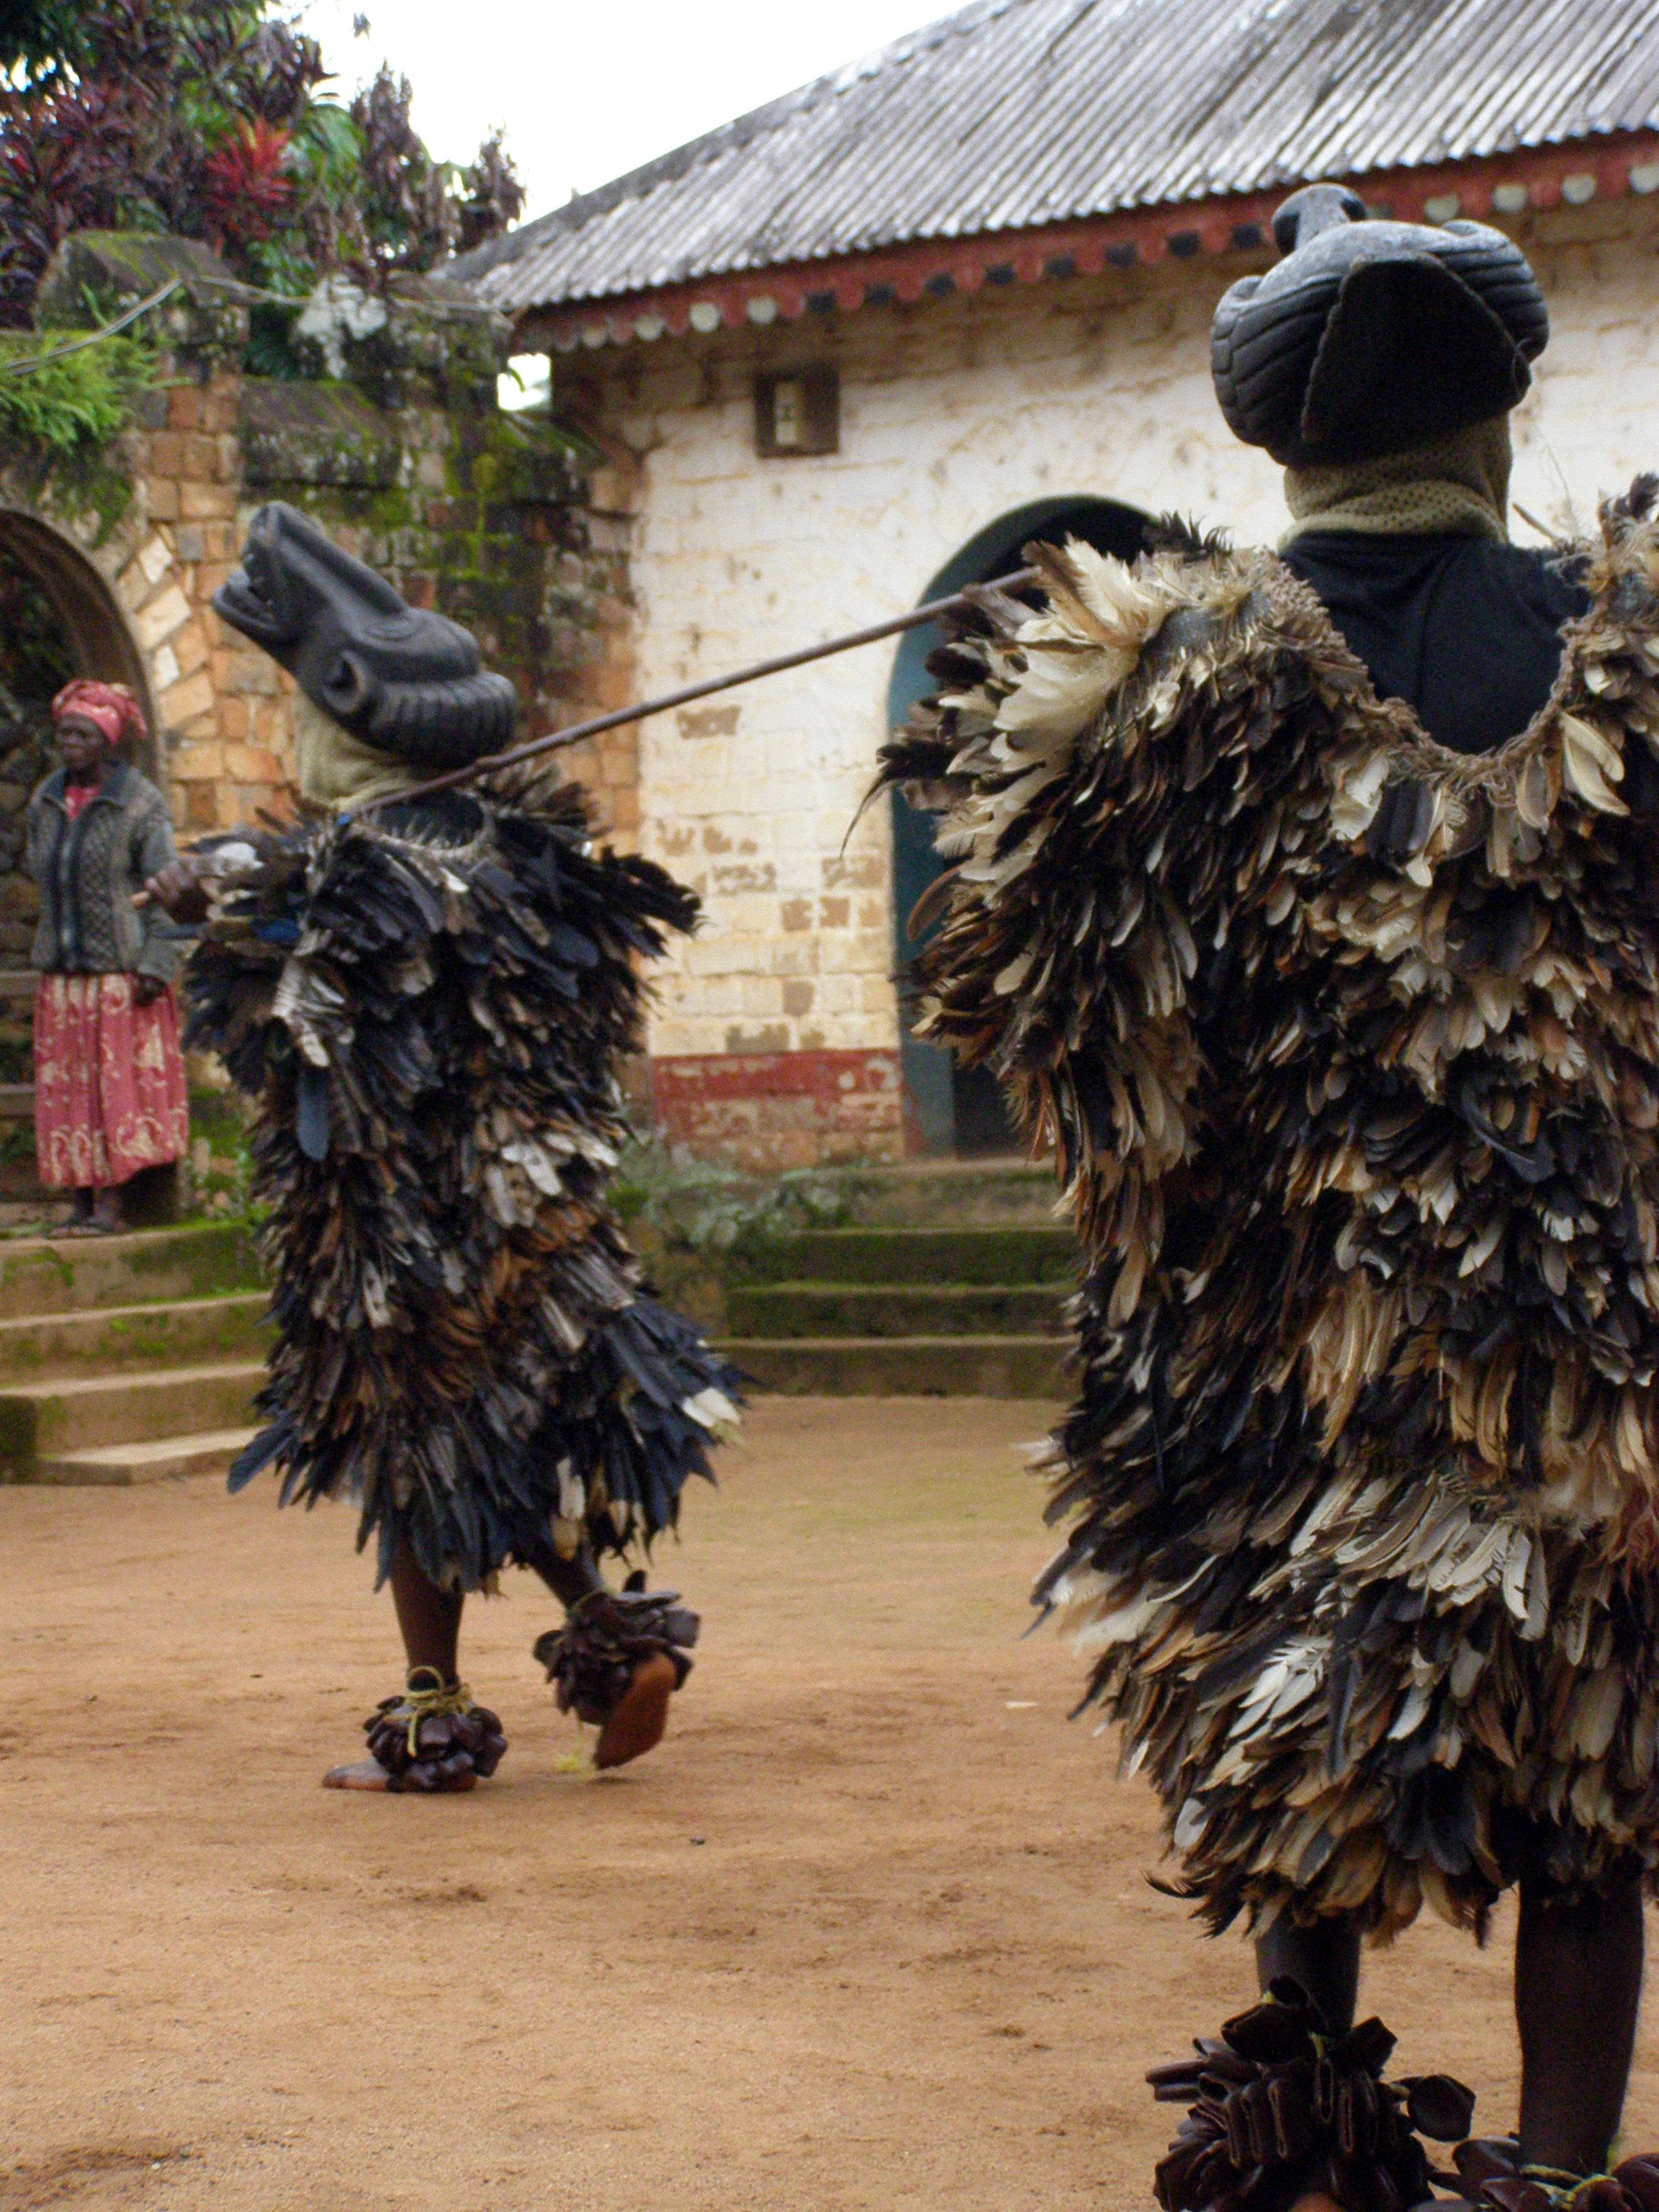 Dances in the Palace of Bafut